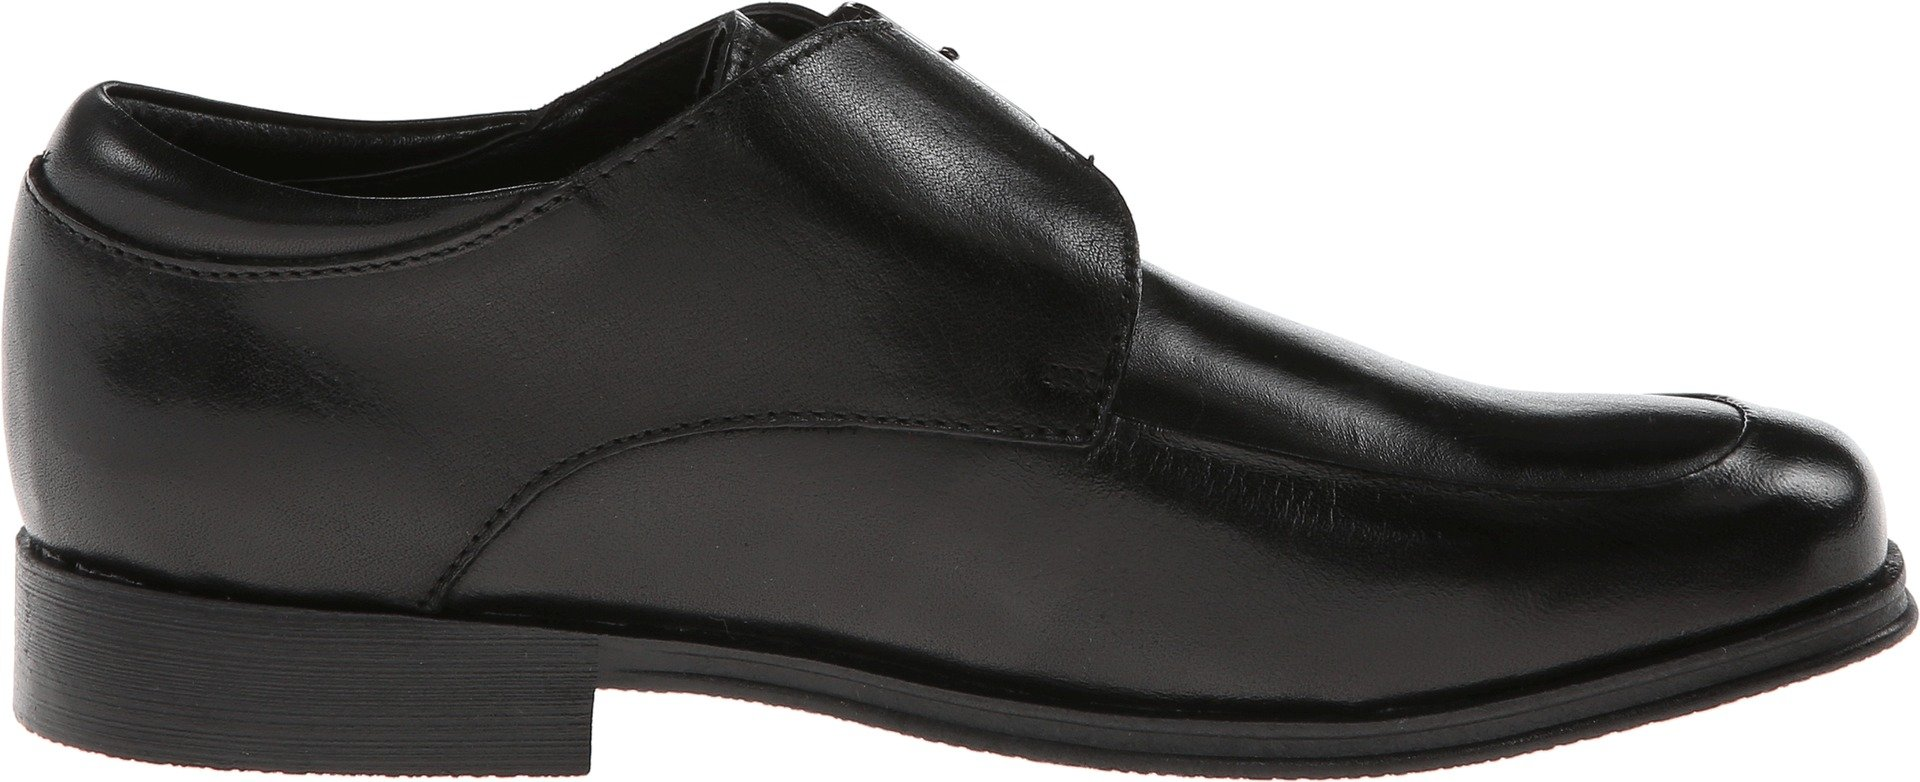 Kenneth Cole Reaction Kids Boy's In the Club (Little Kid/Big Kid) Black Loafer 13 Little Kid M